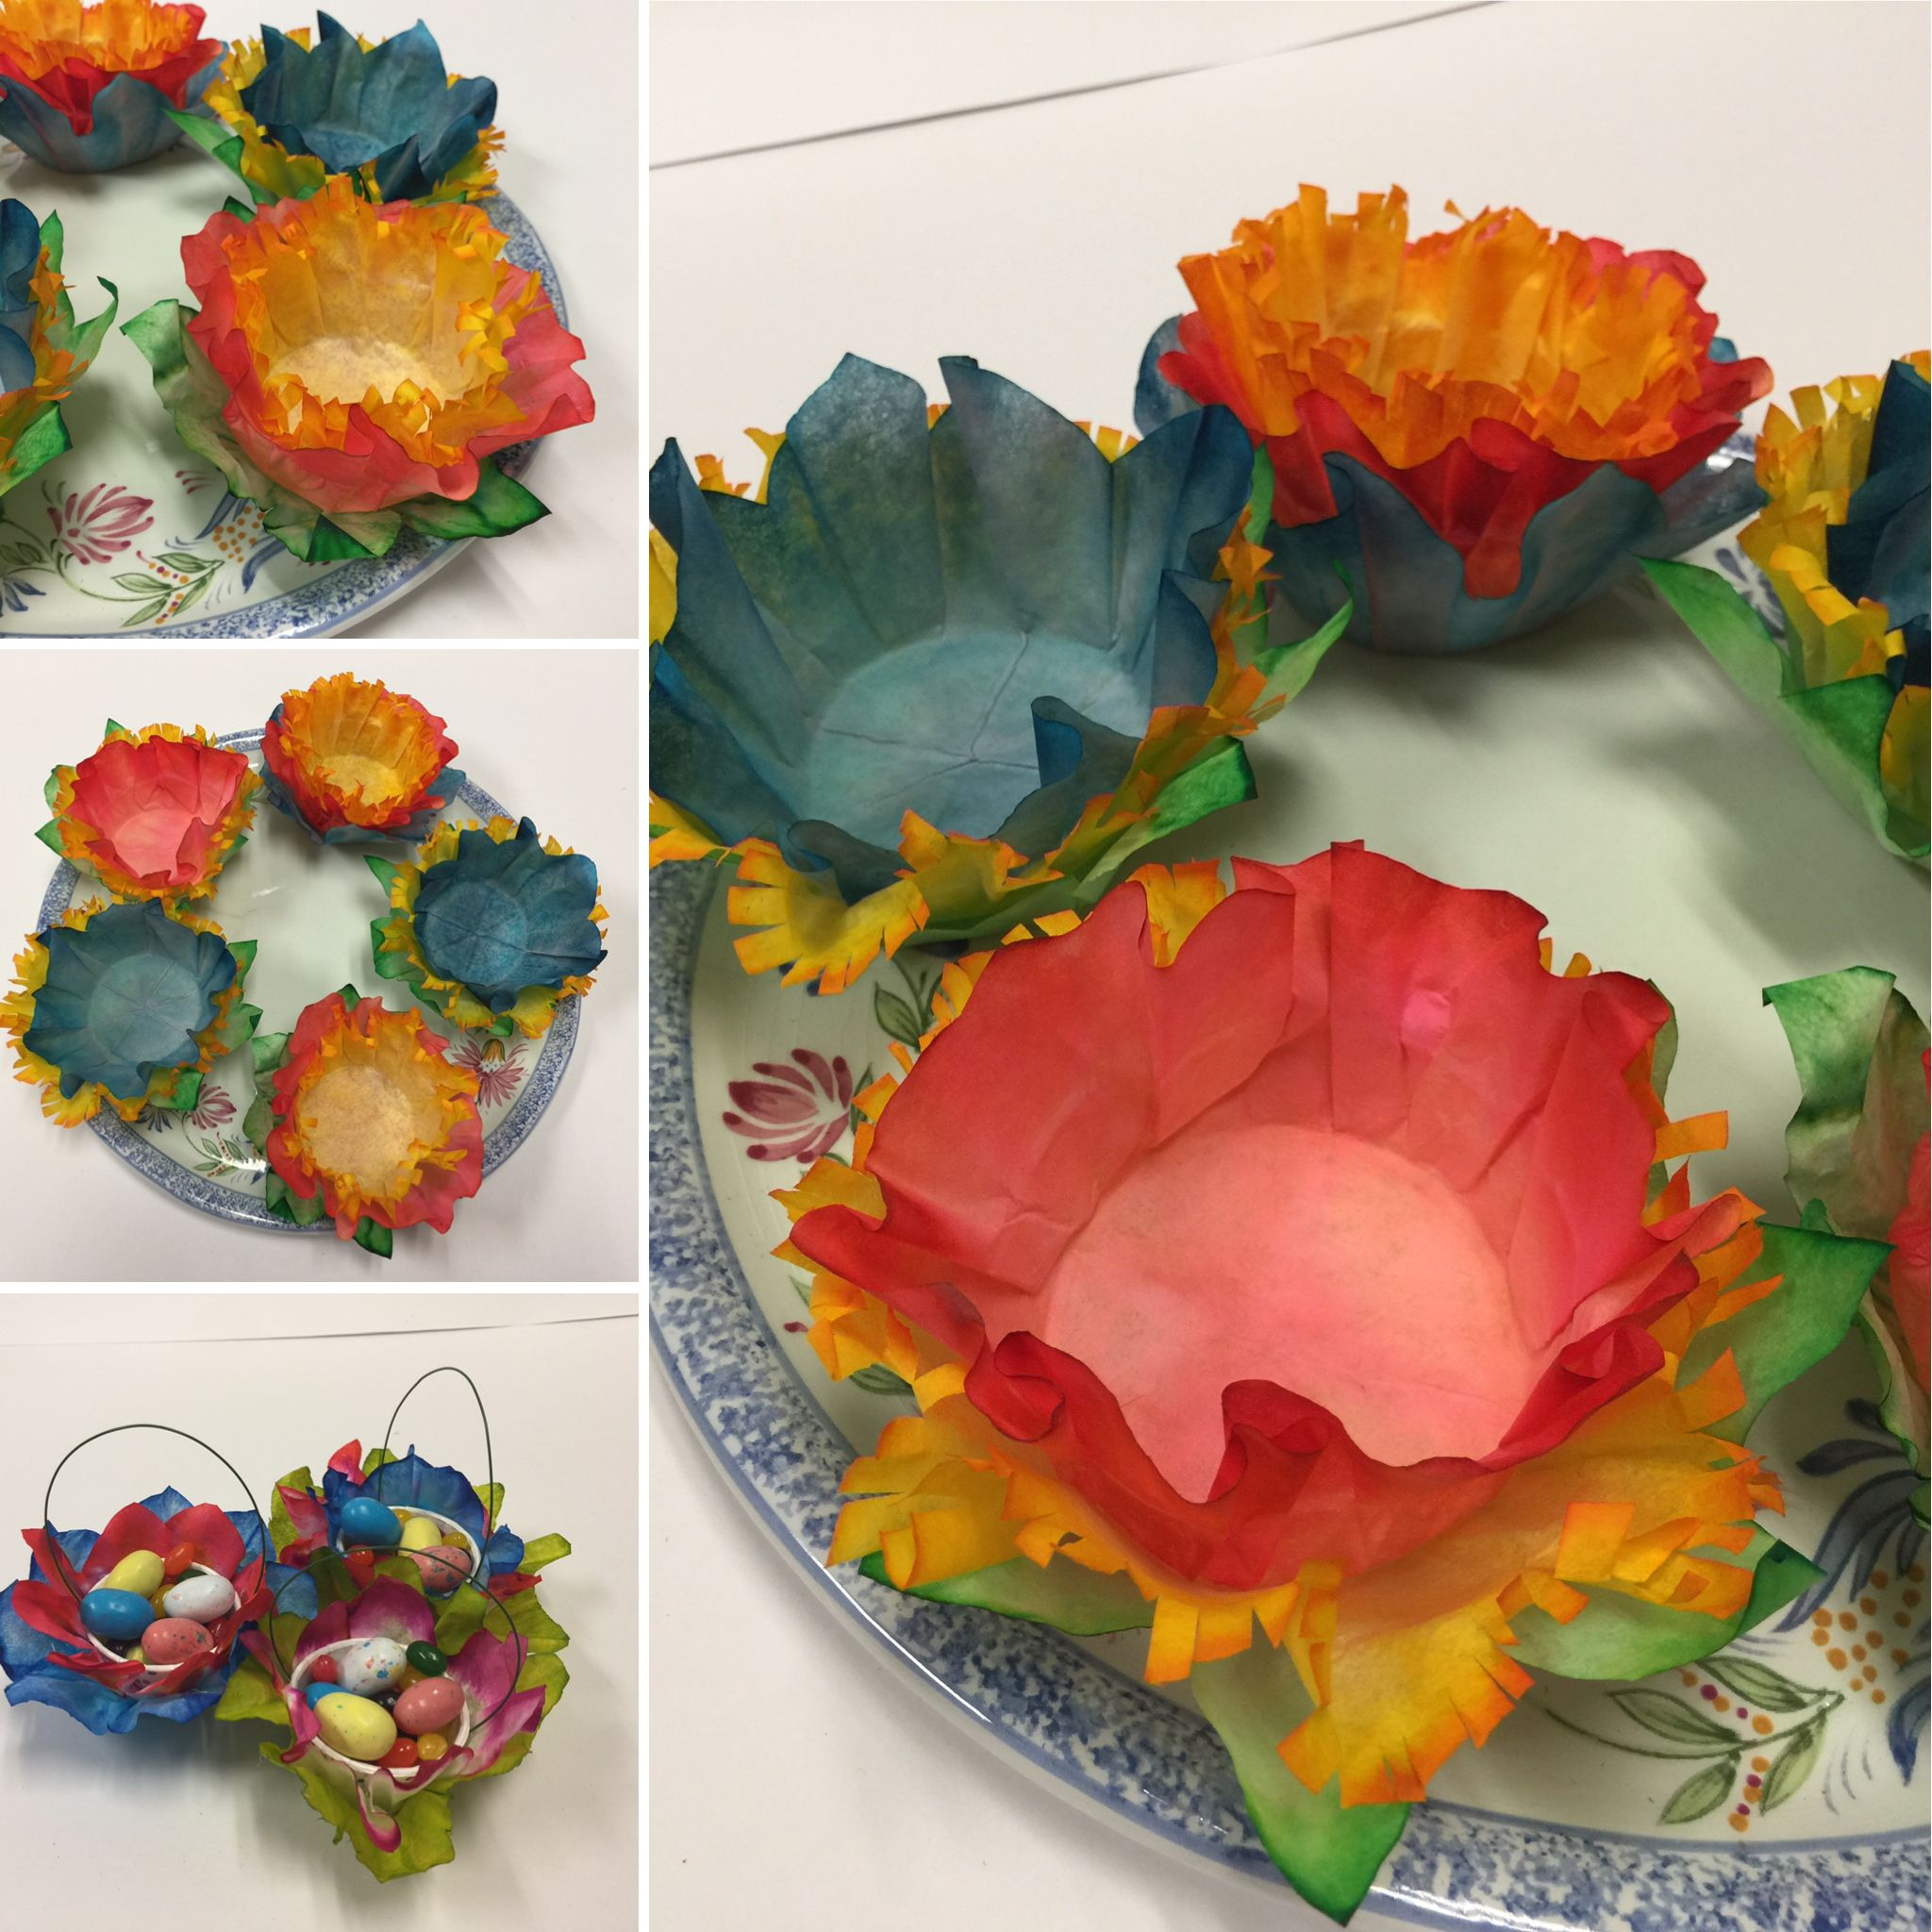 Diy How To Dye Coffee Filter Flower Baskets Put Chocolates